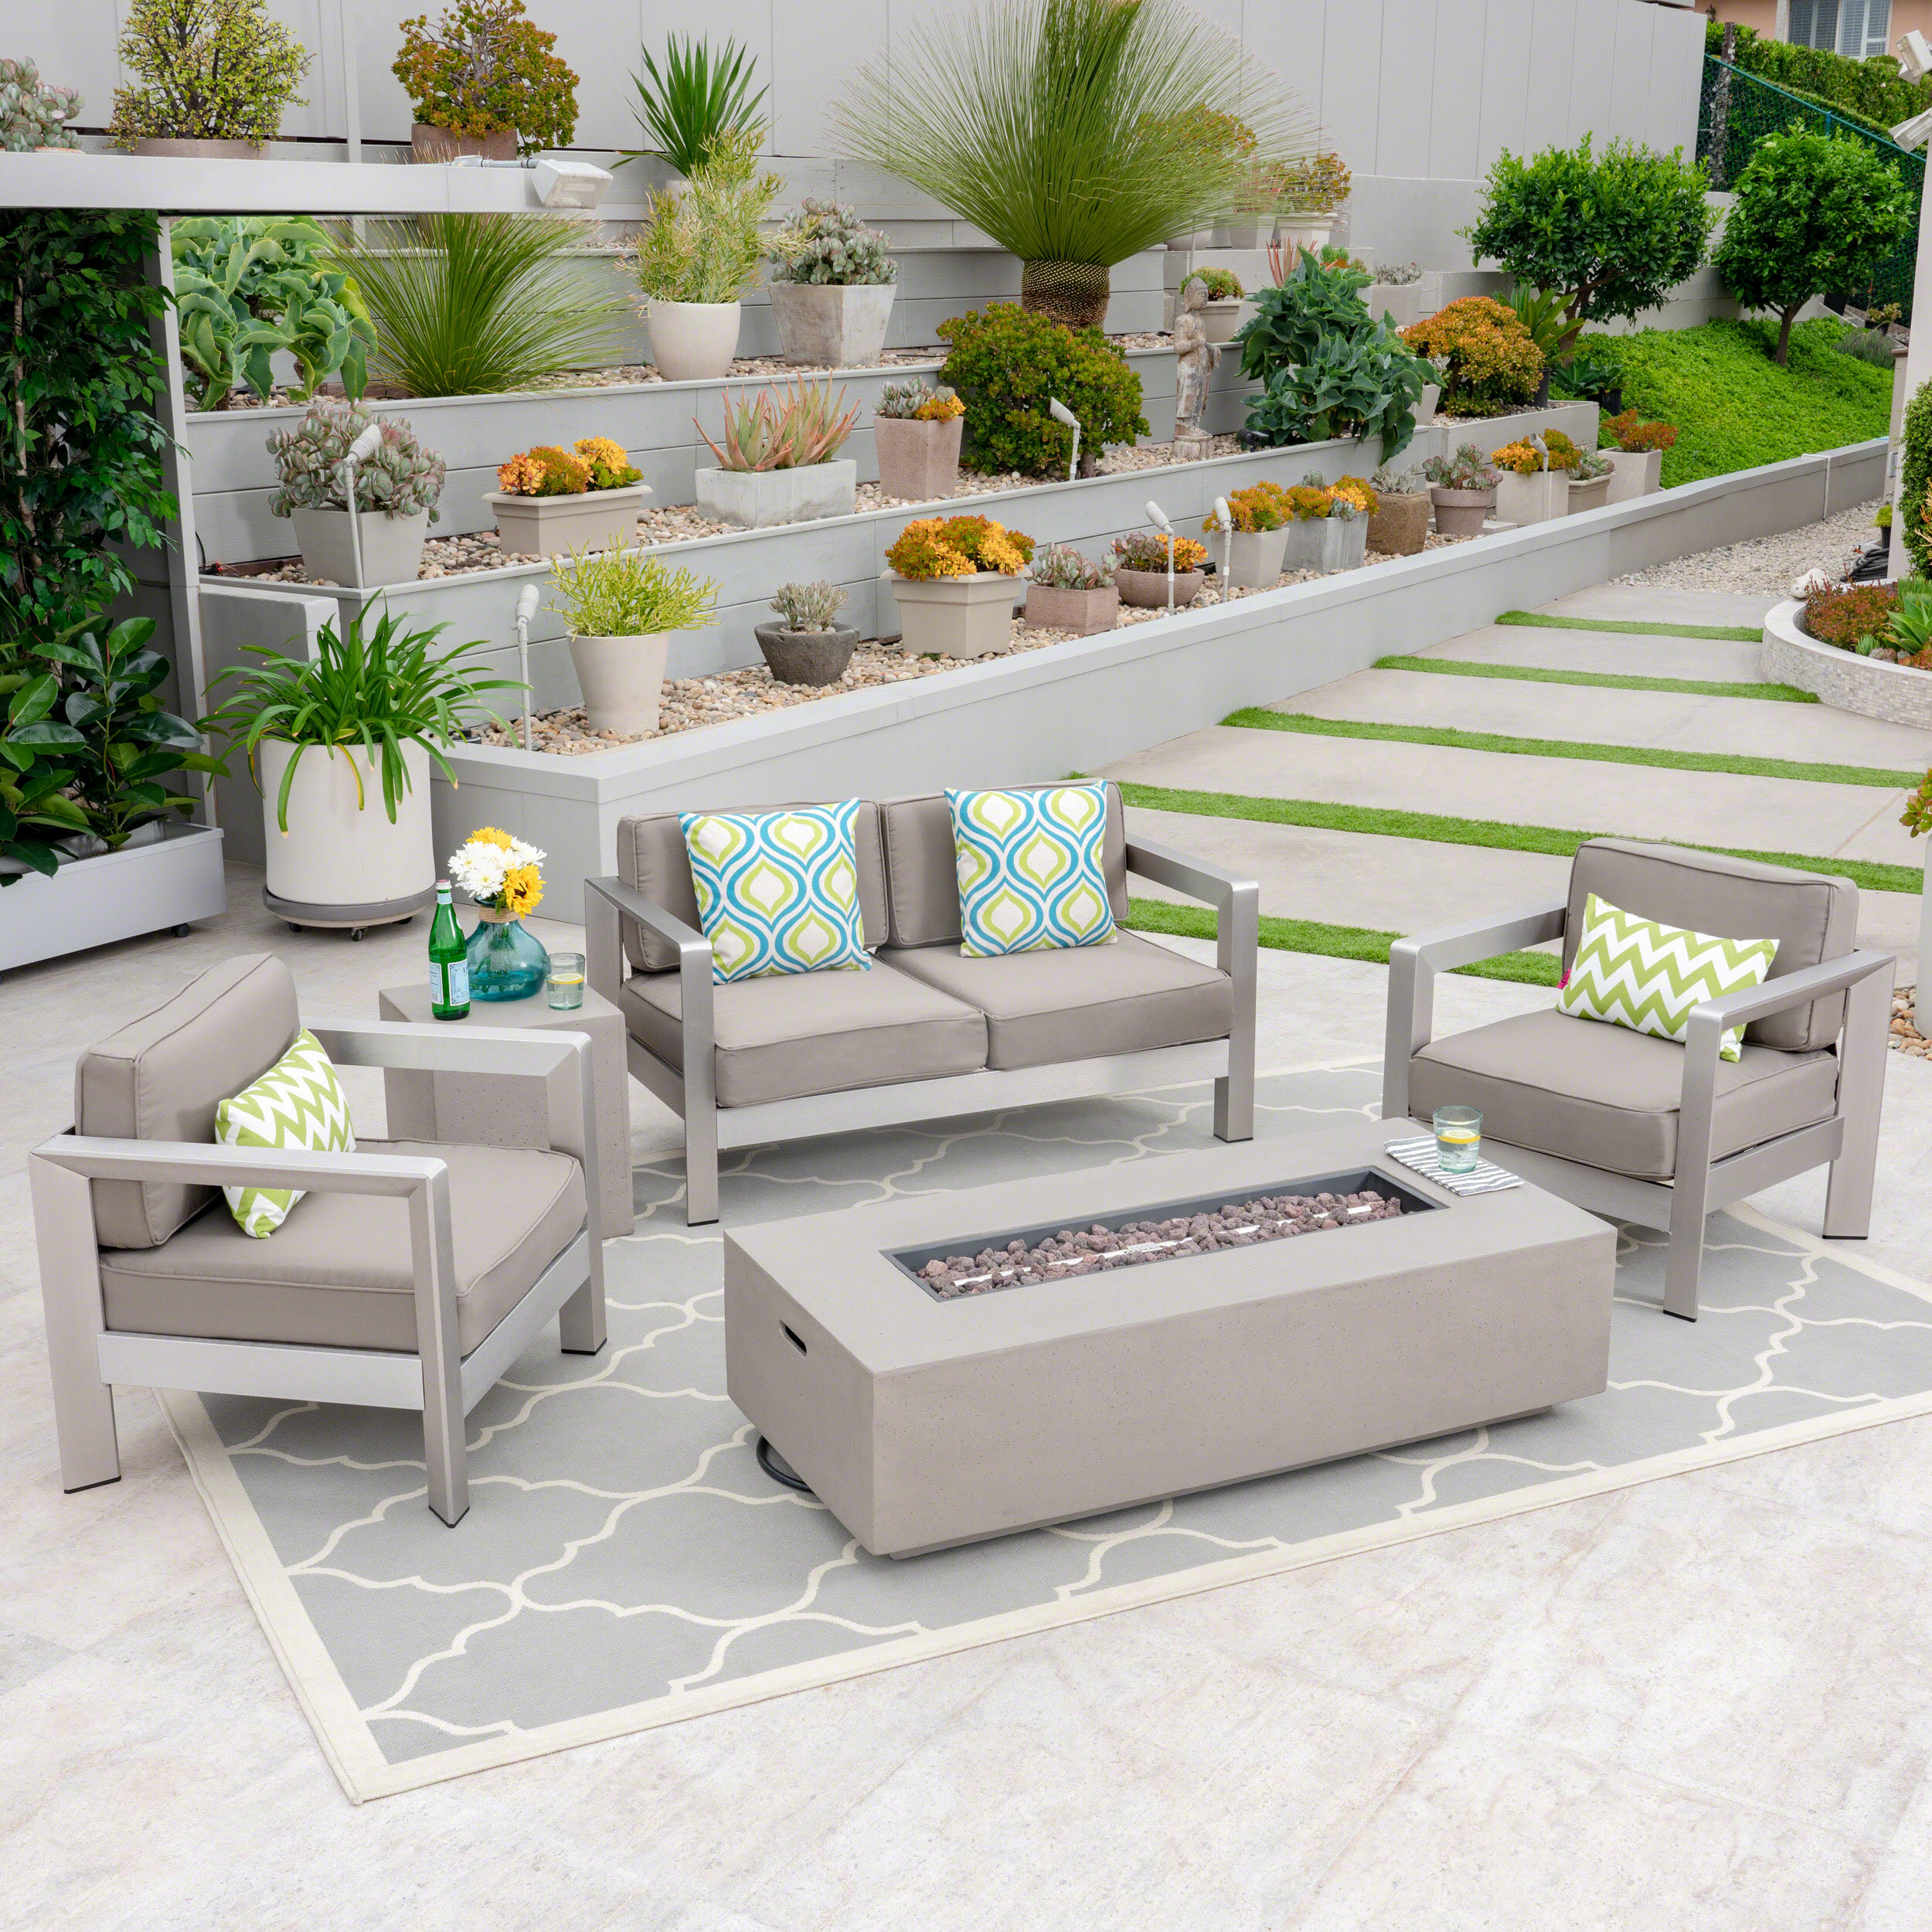 Vincent Outdoor 5 Piece Aluminum Chat Set with Fire Pit and Tank Holder, Silver, Khaki, Light Gray